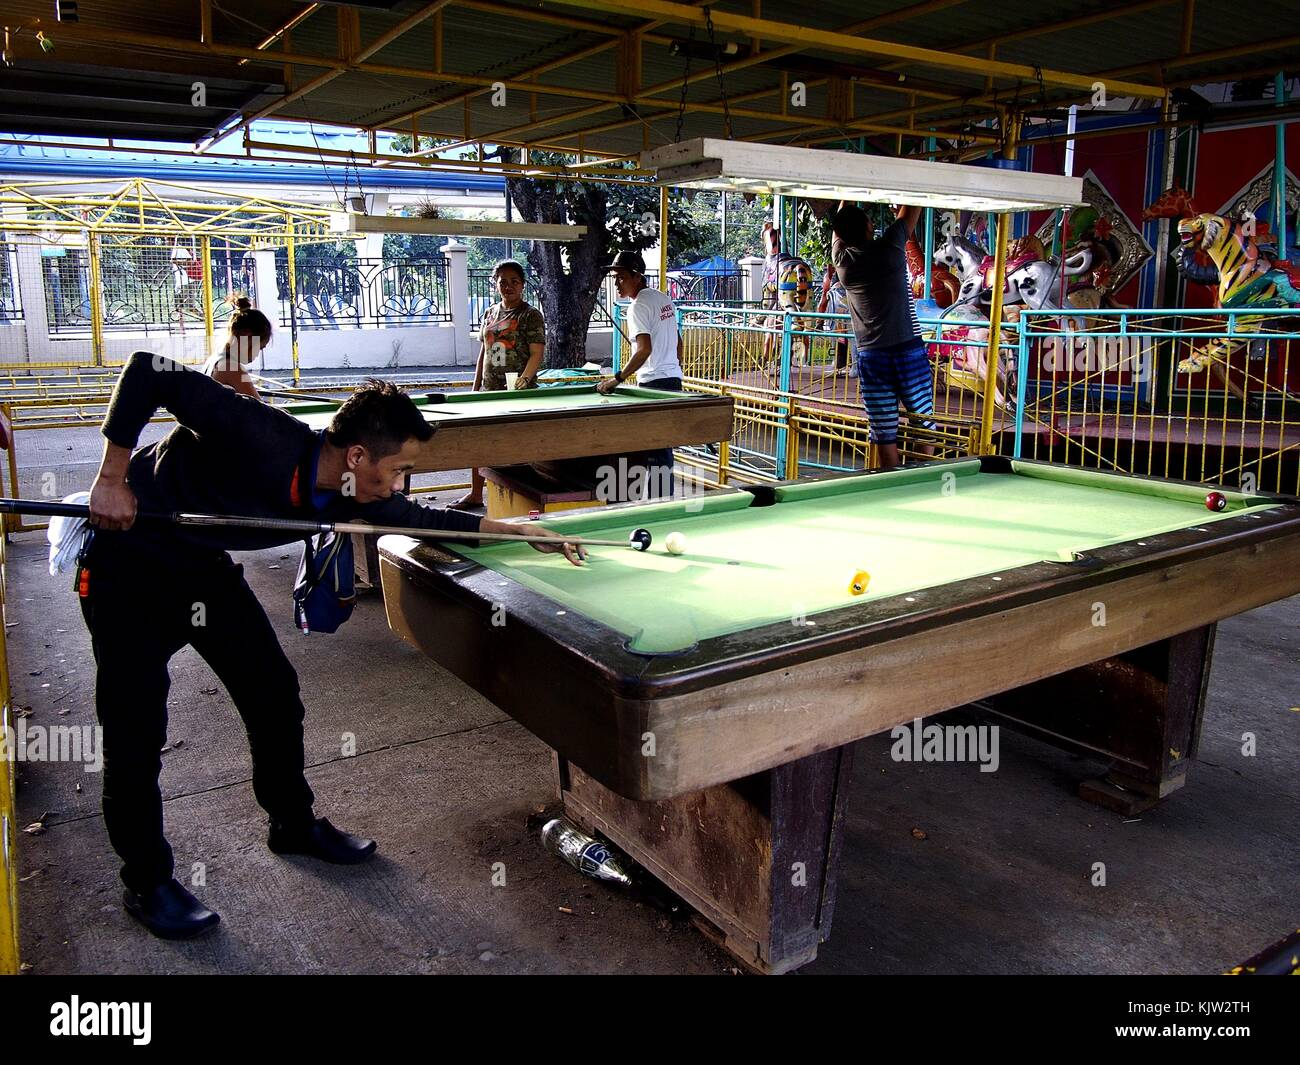 ANTIPOLO CITY, PHILIPPINES - NOVEMBER 25, 2017: A man plays billards at a public park. - Stock Image